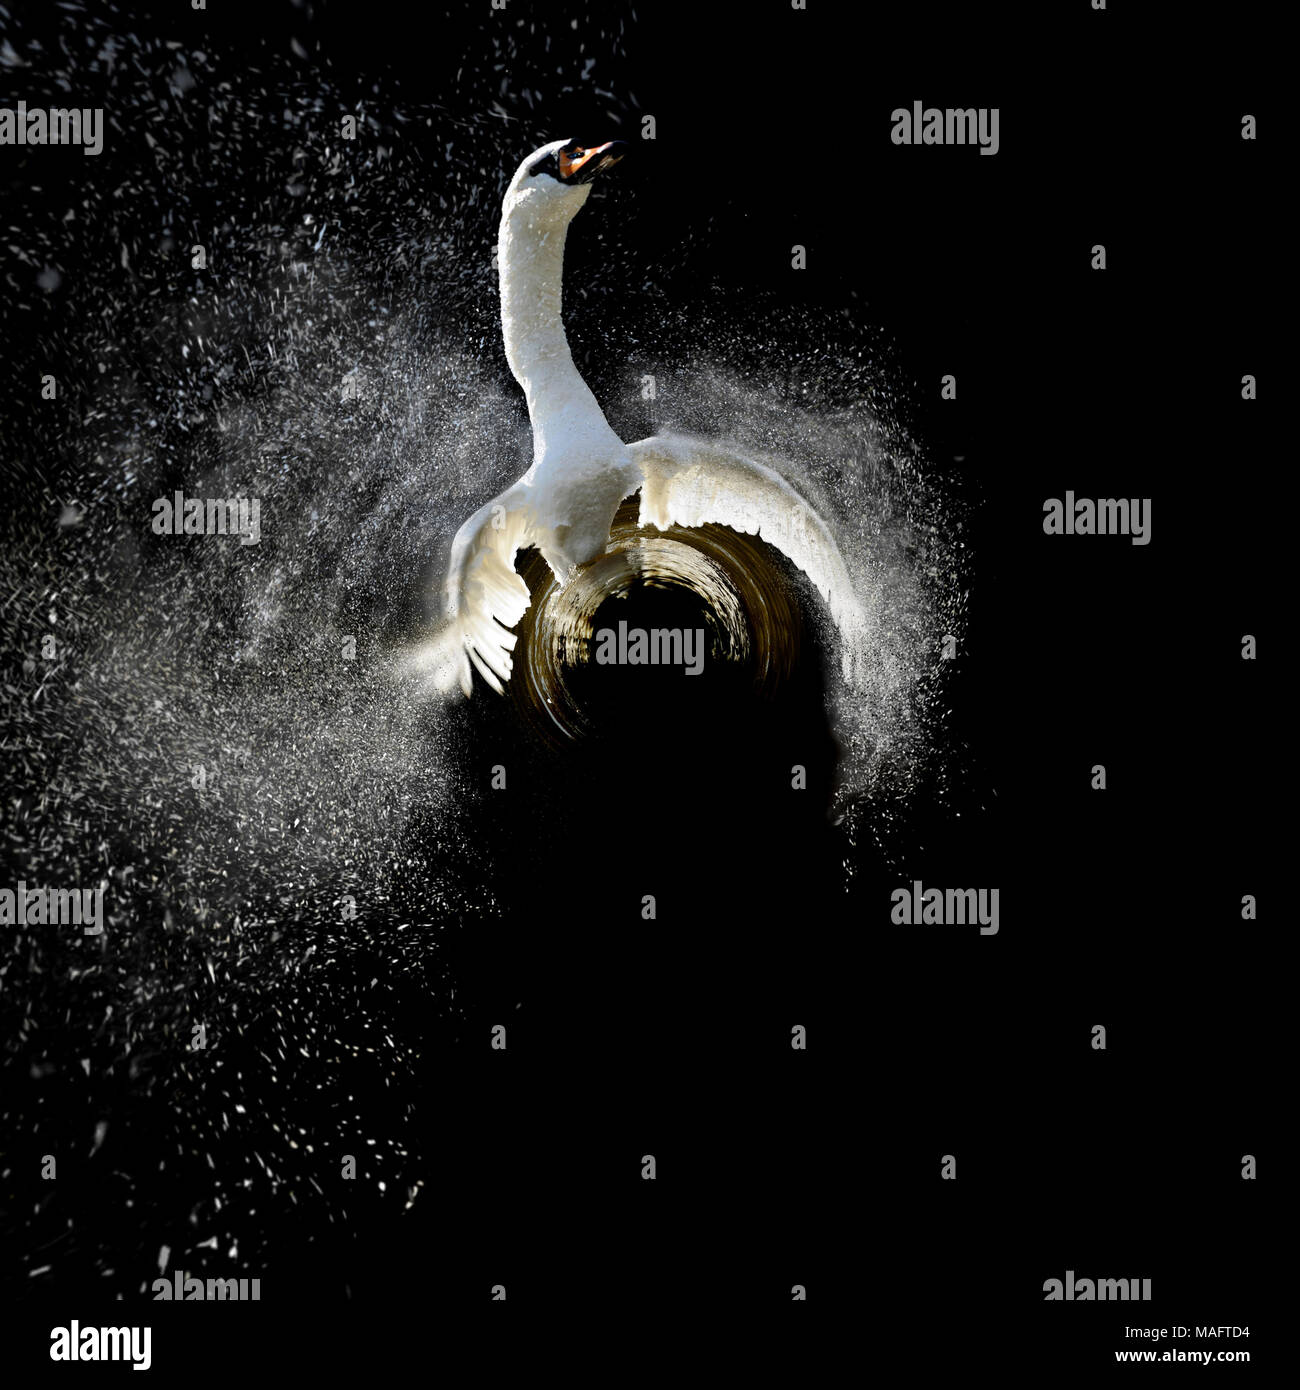 360 degree view of Swan in water and splashing water drops around - Stock Image